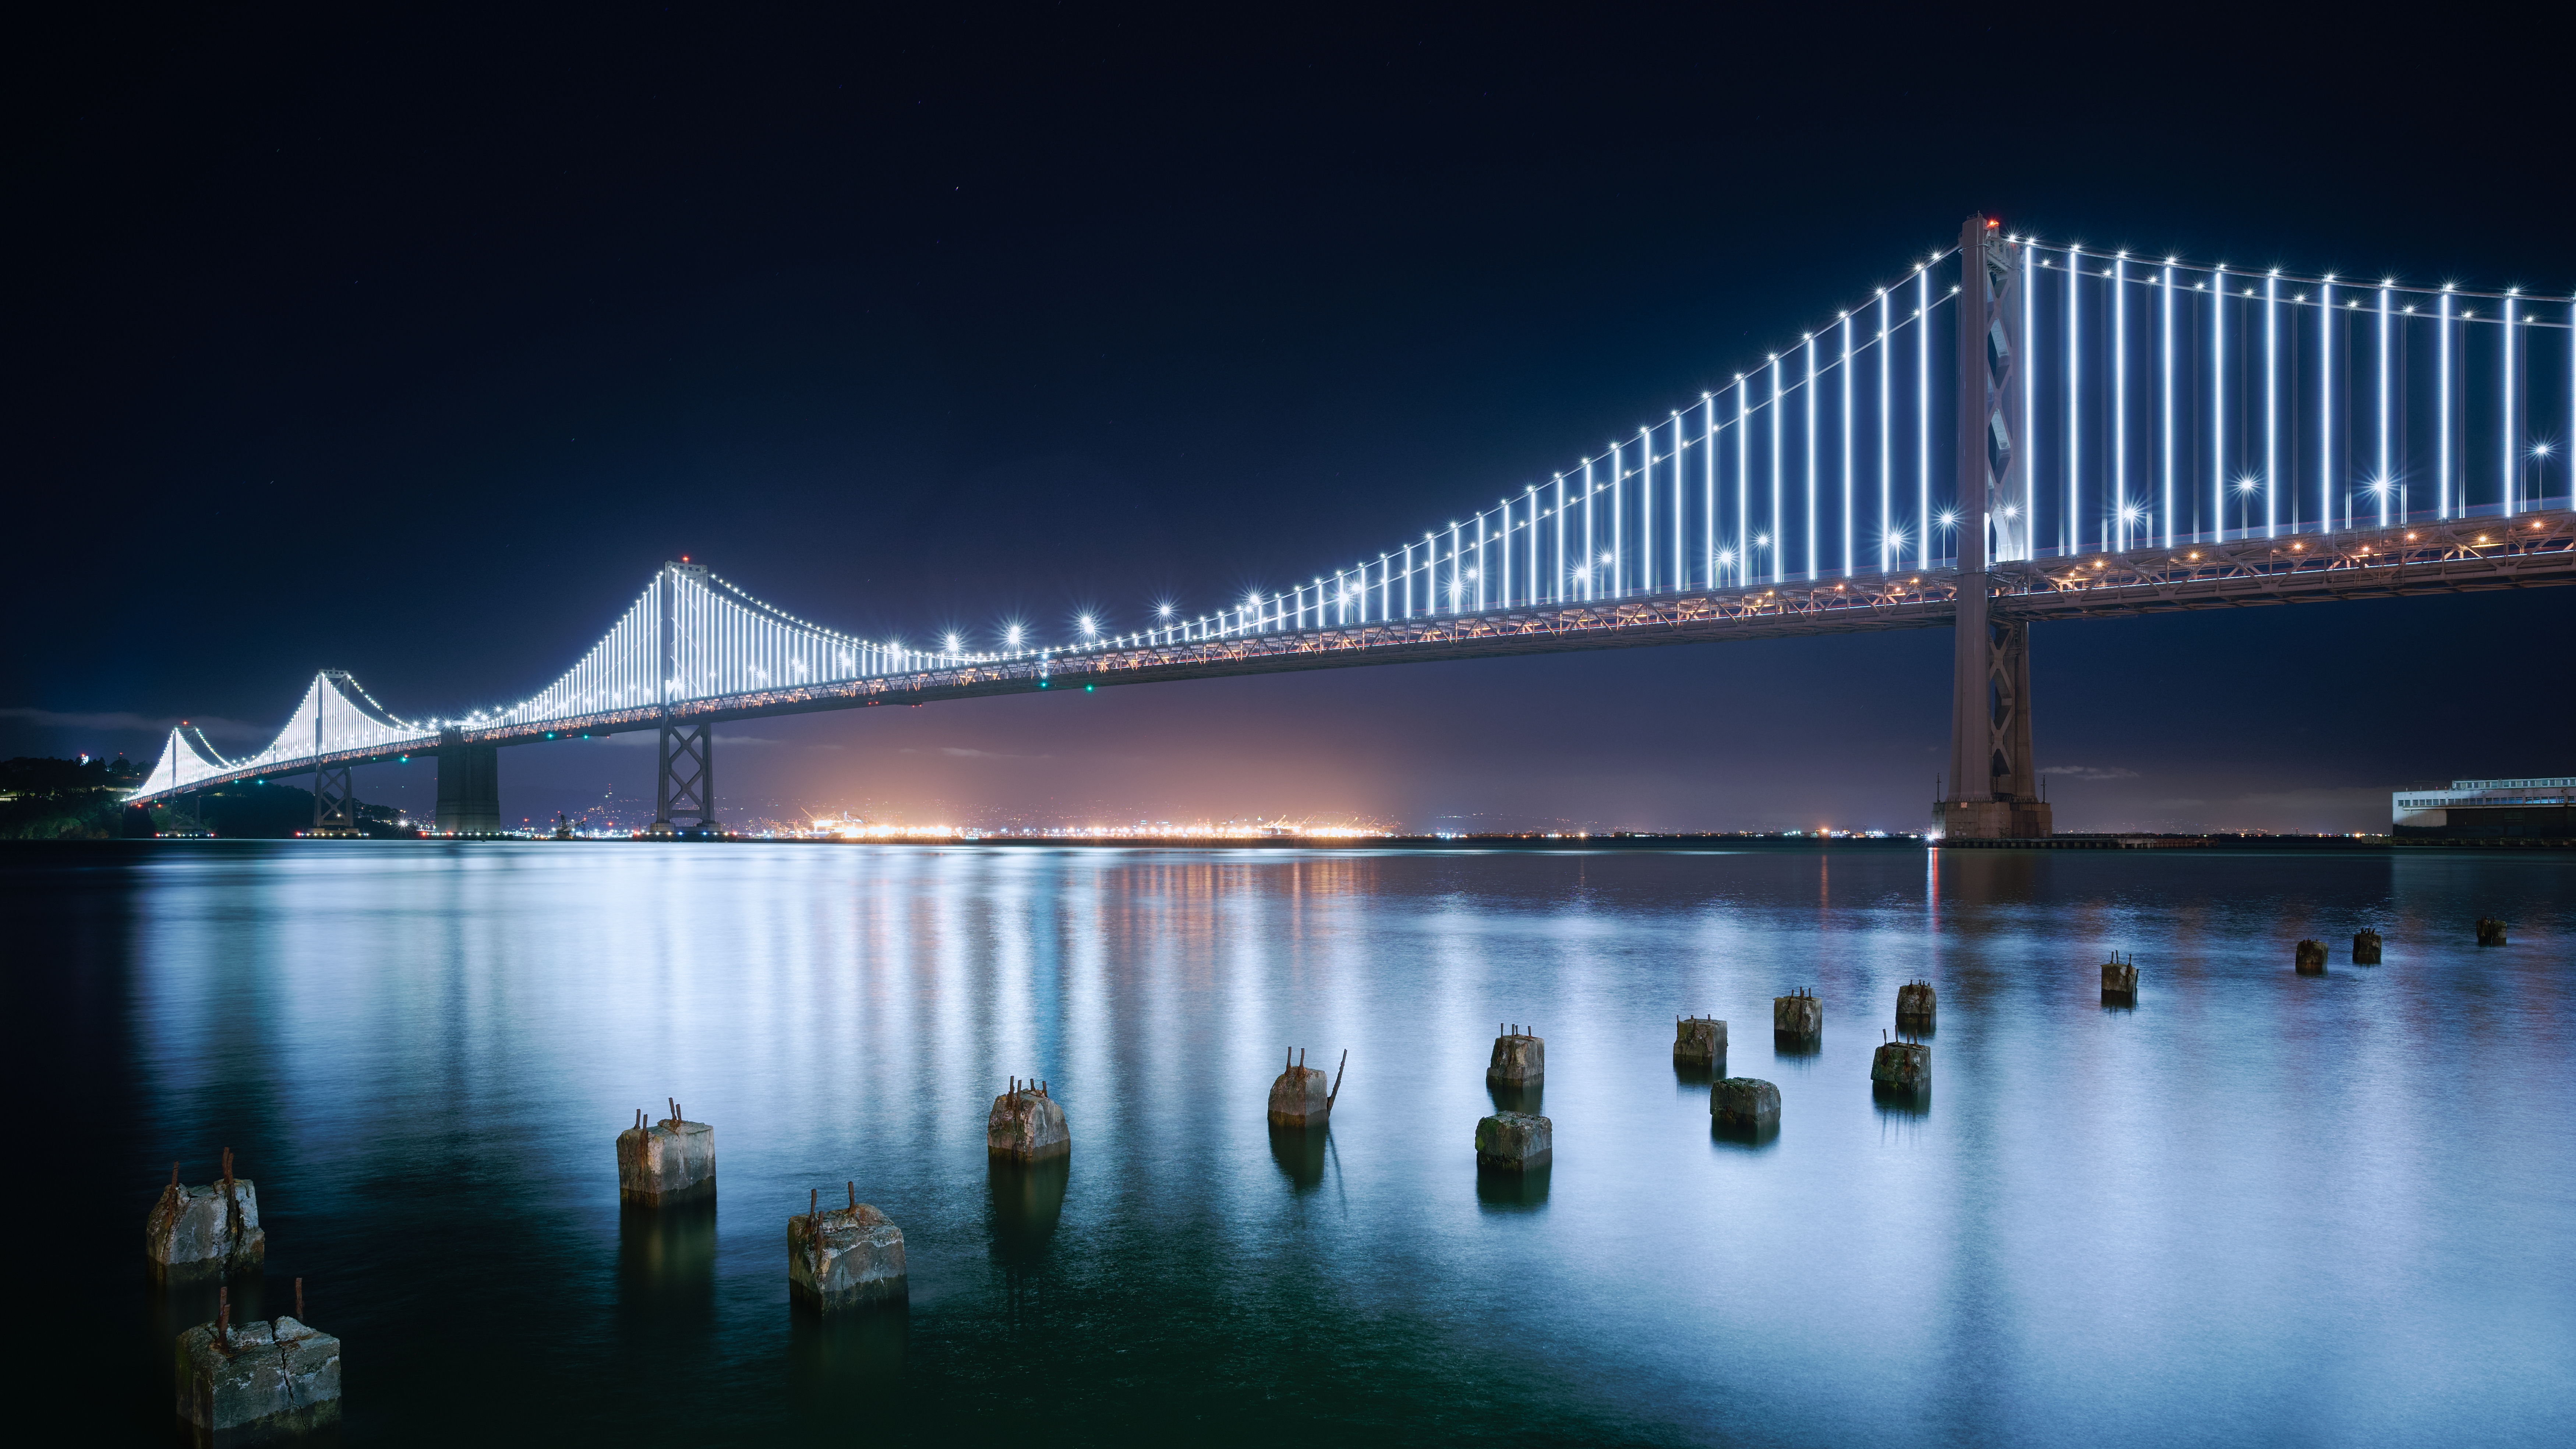 Commonsfeatured Picture Candidates Log April 2017 Wikimedia Commons High Desert Aller Bee Gone 144 Tablet Night Long Exposure Of The Western Span San Francisco Bay Bridge